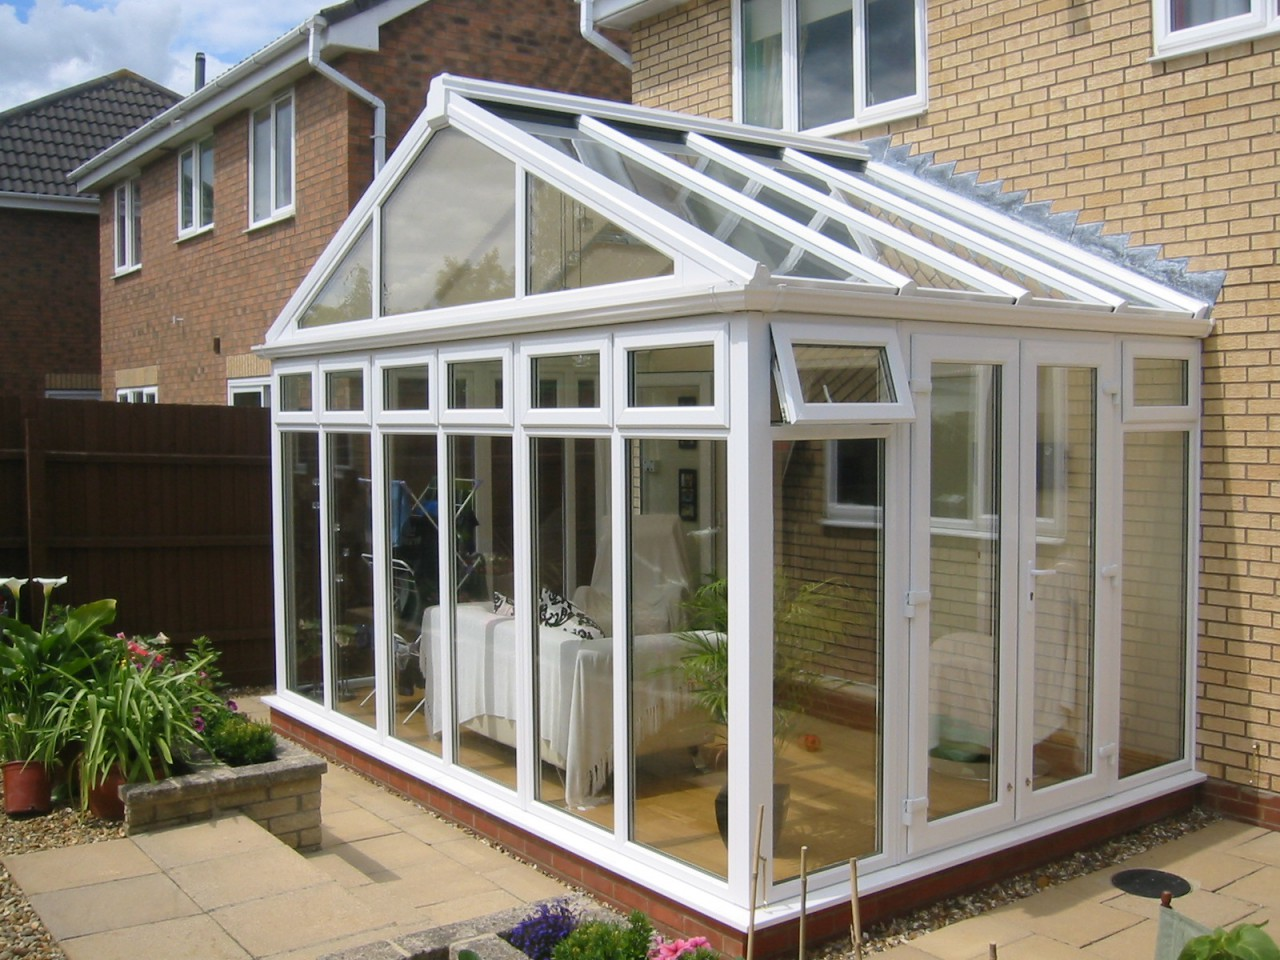 Edwardian Conservatory Norfolk Windows And Conservatories